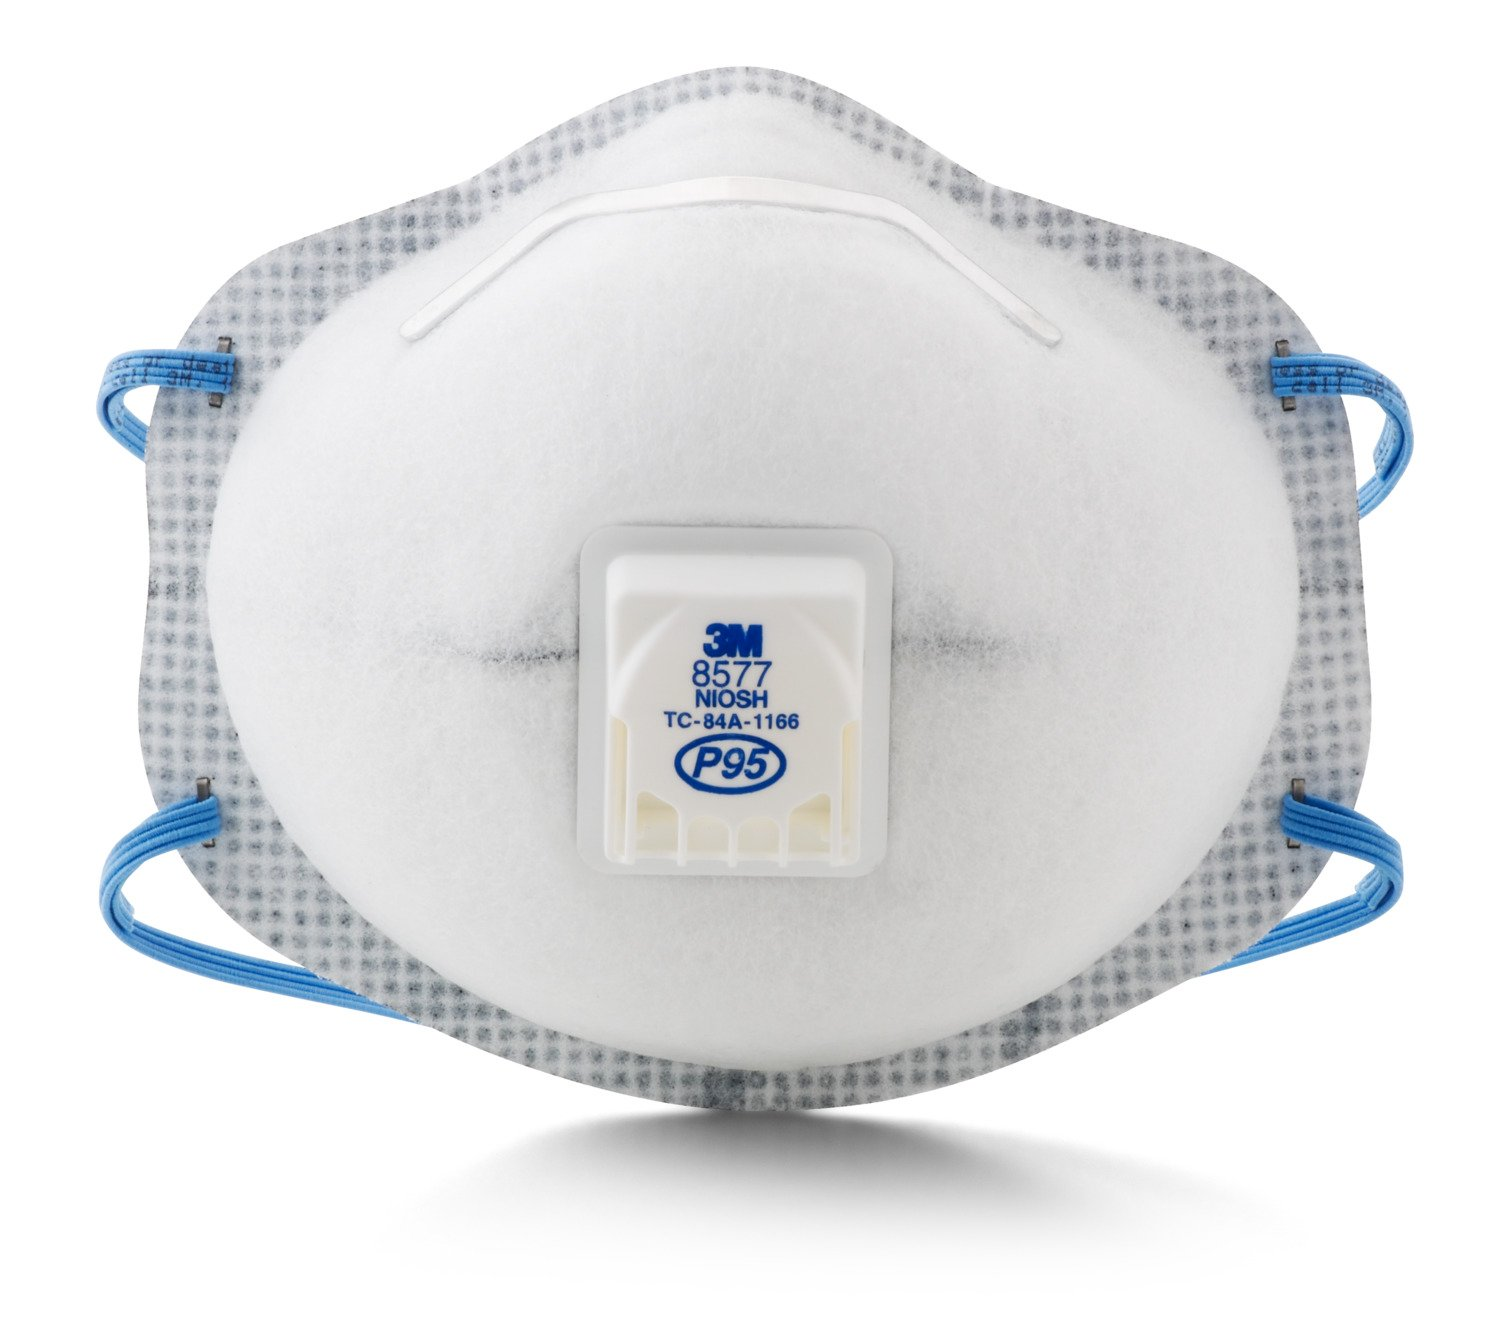 3M Personal Protective Equipment 8577 Respirator, 10 Pack by 3M Personal Protective Equipment